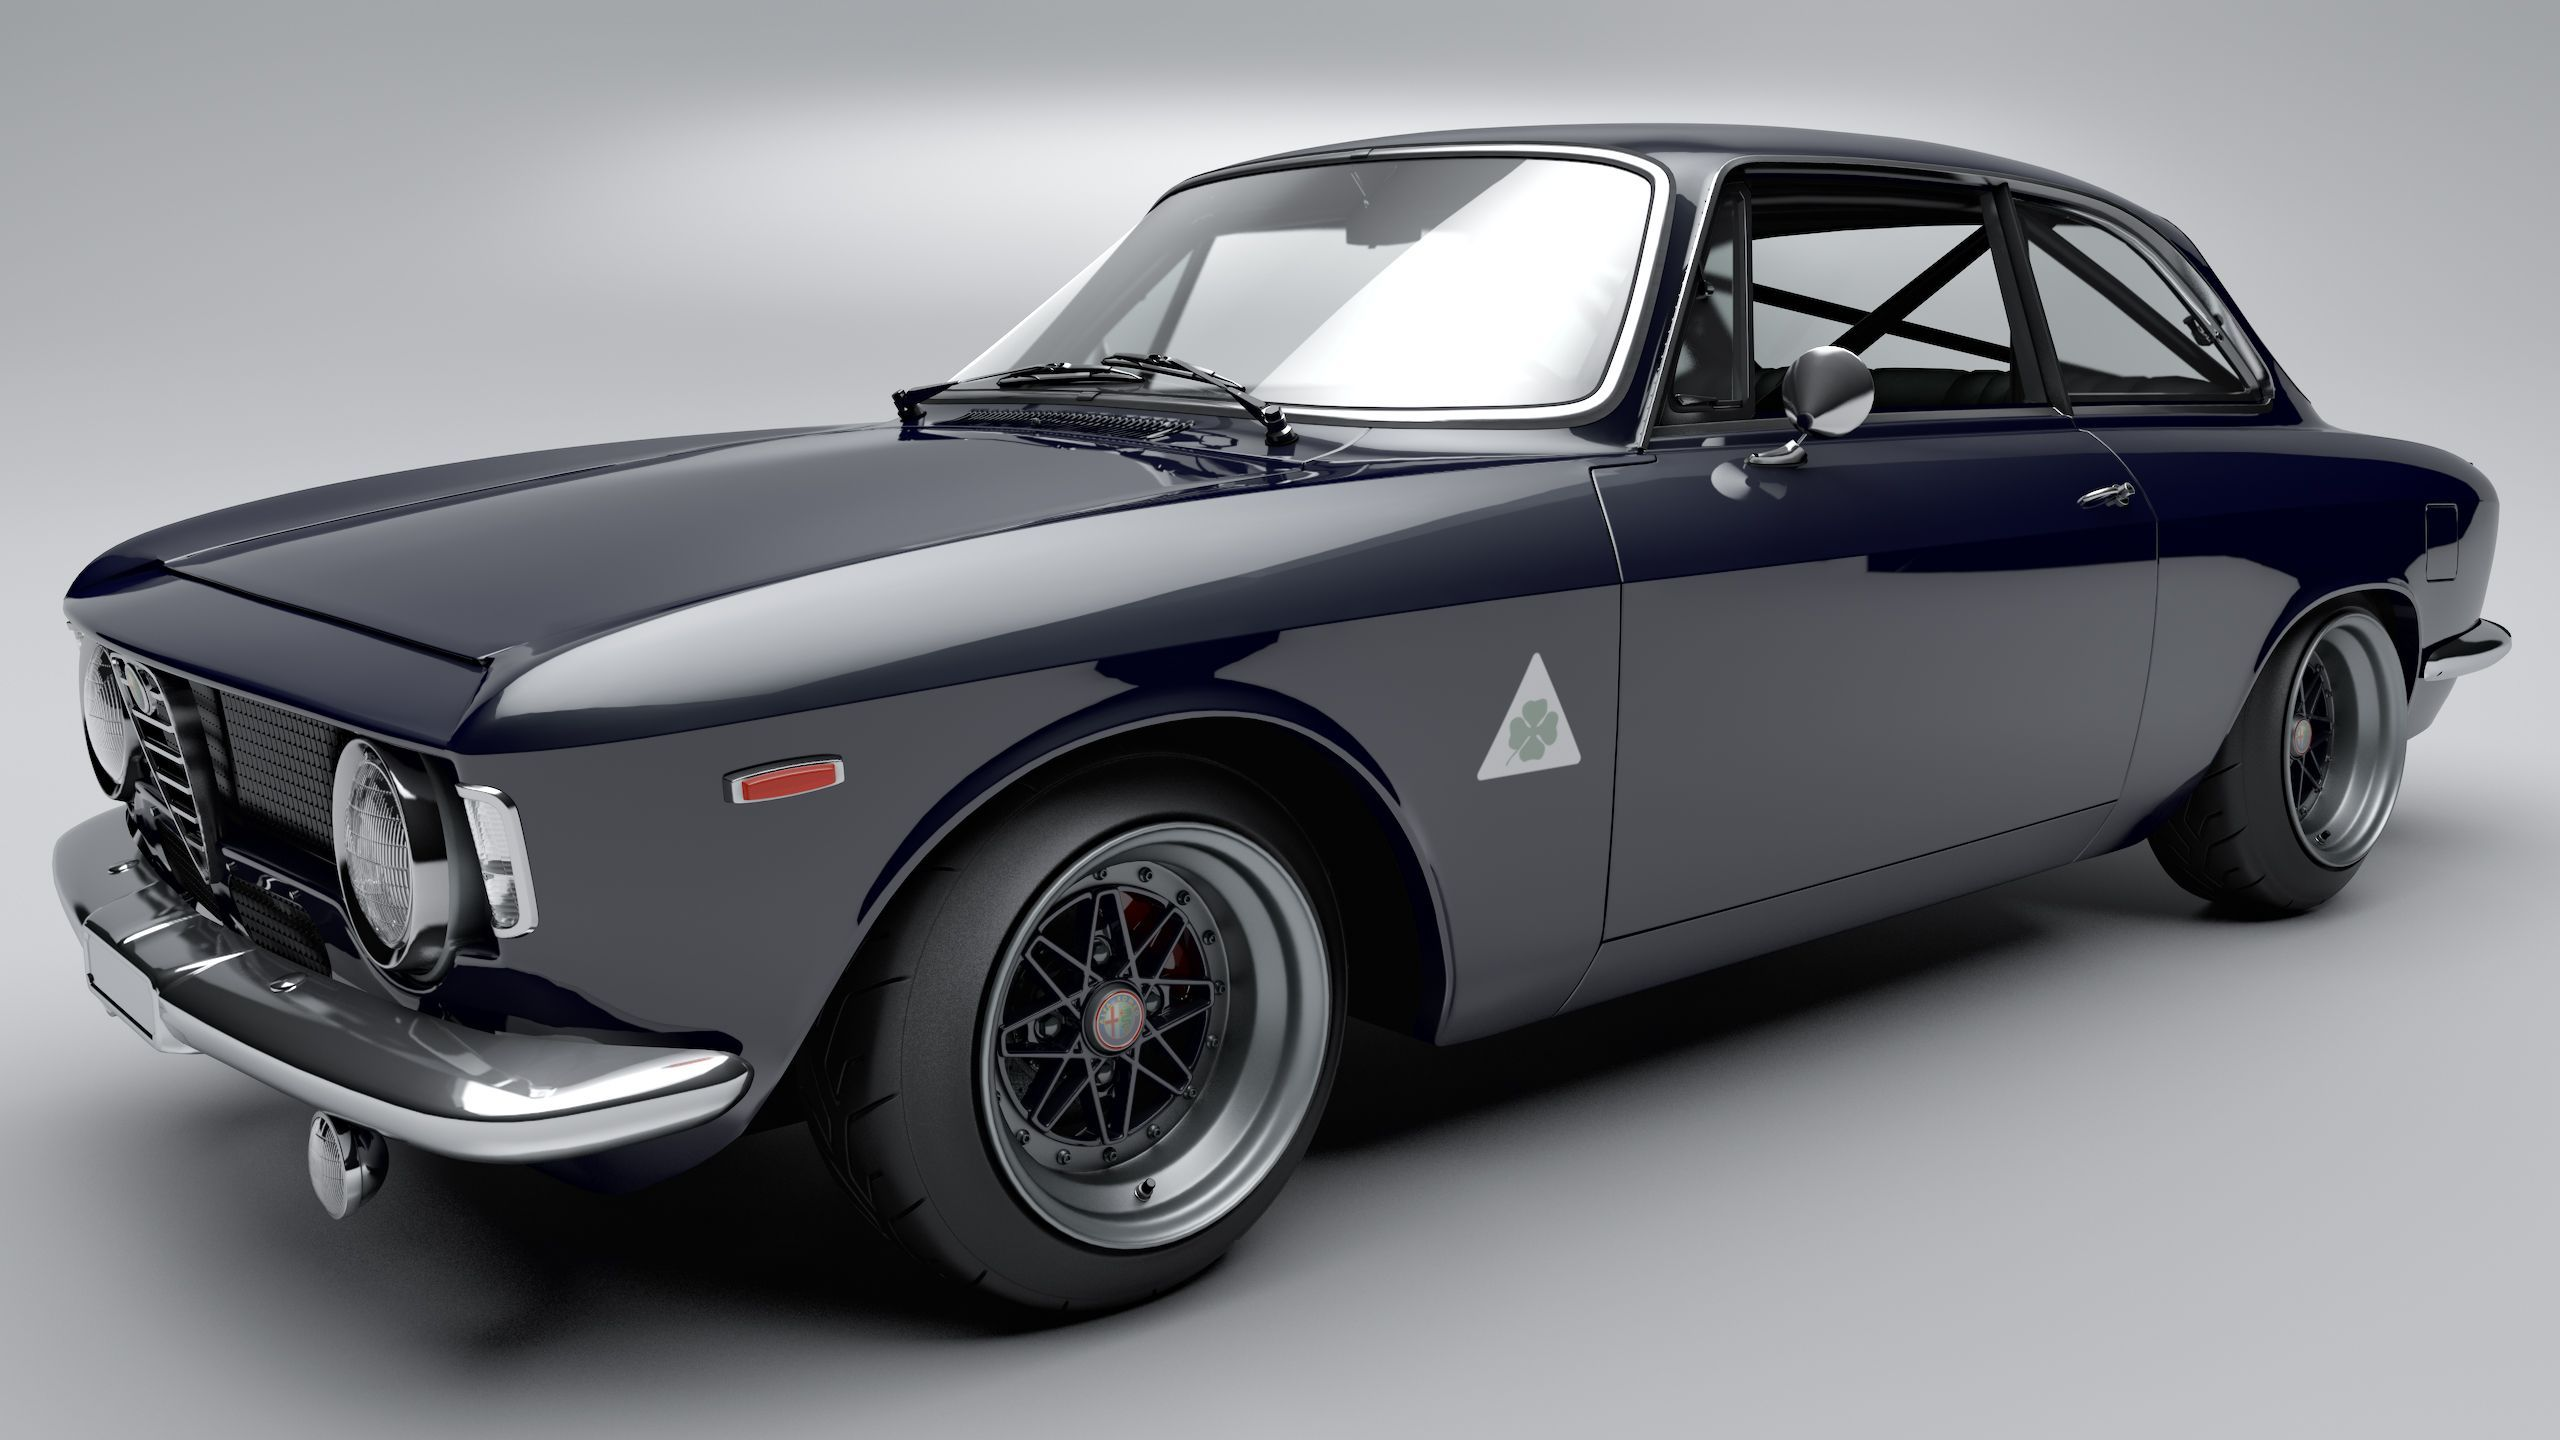 pinclassic car news pics and videos on alfa romeo classic cars